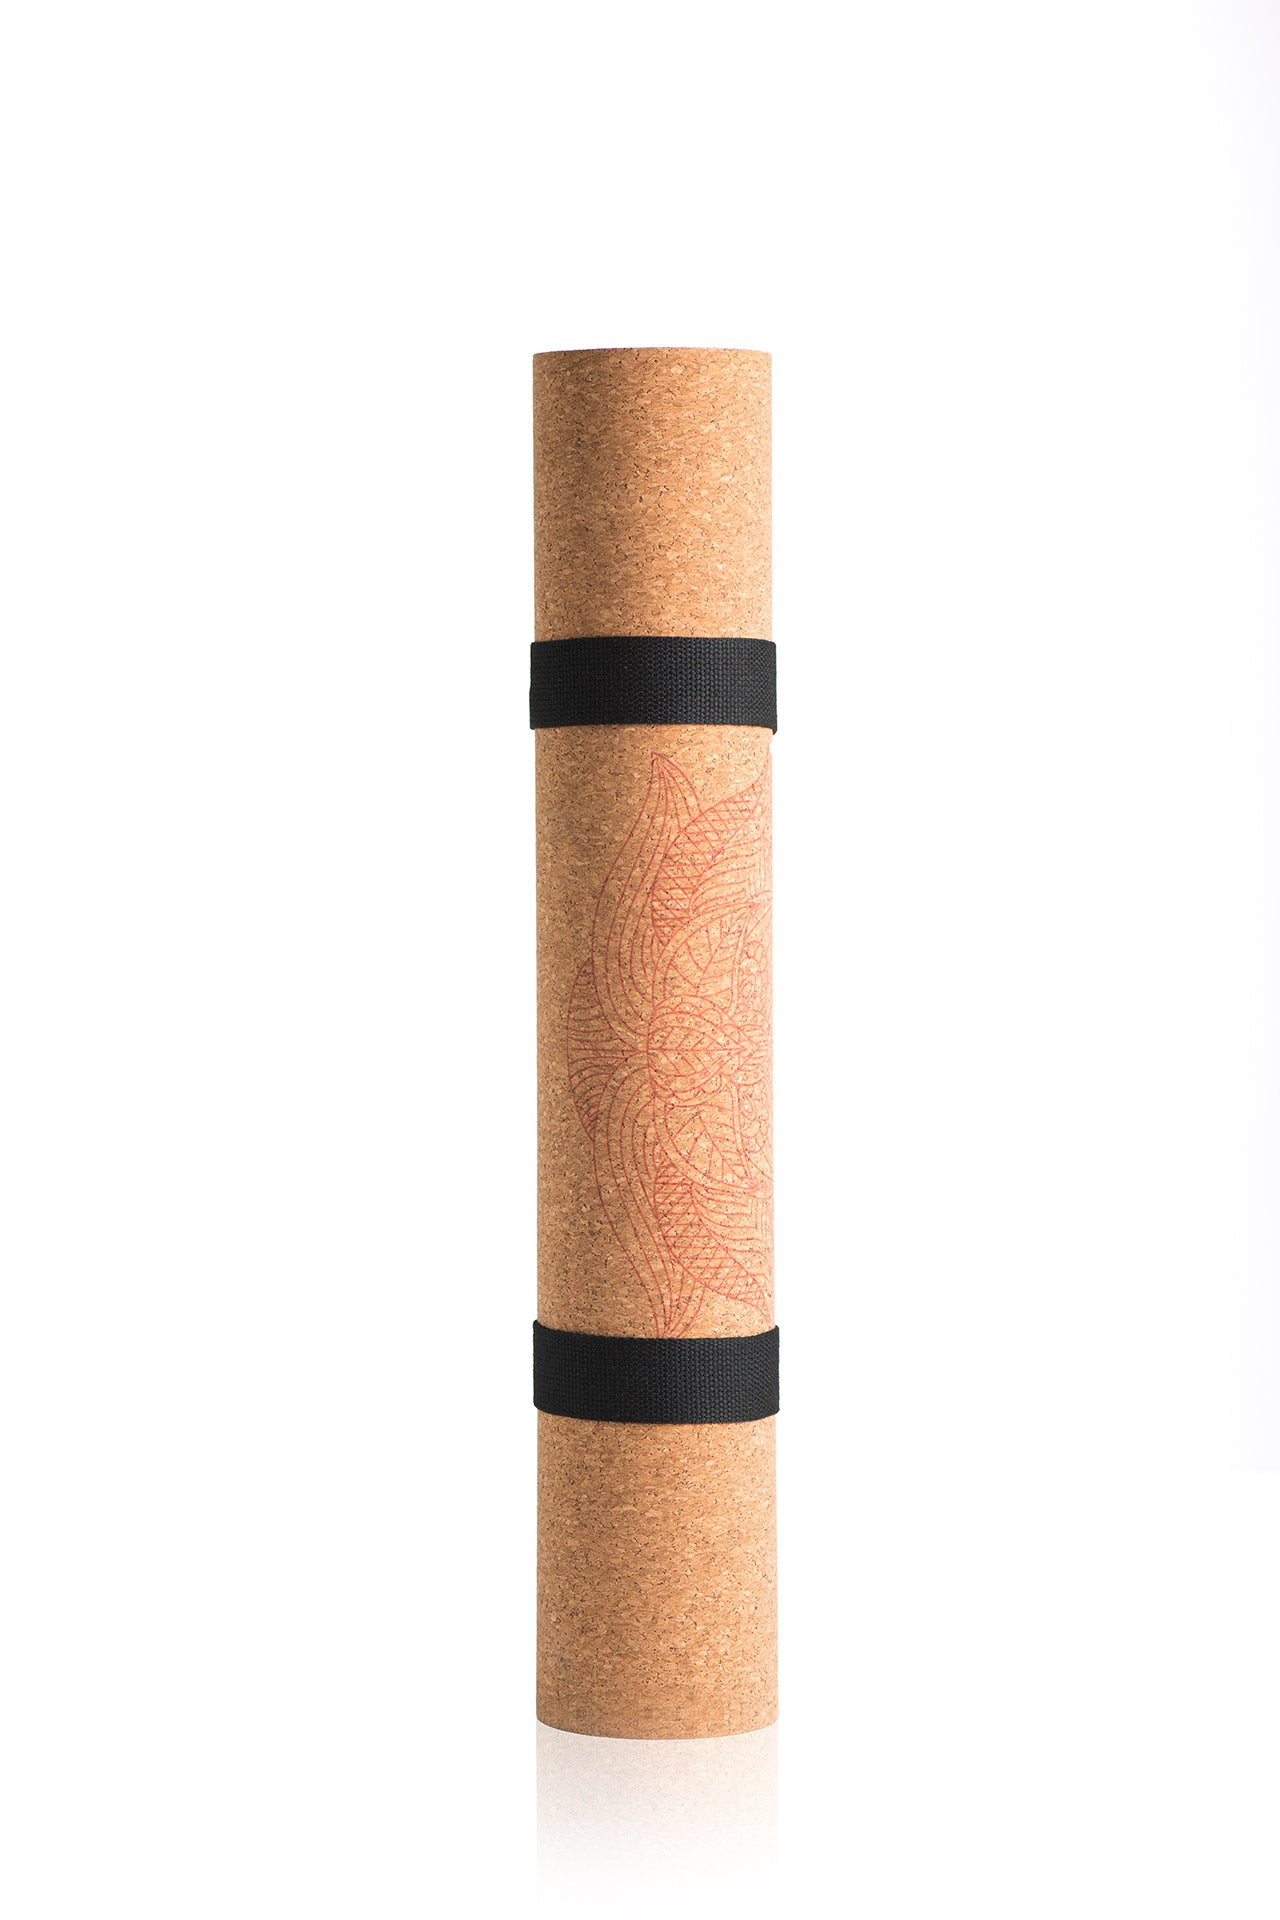 LOTUS *Light-Weight CORK YOGA MAT - Mukta Being